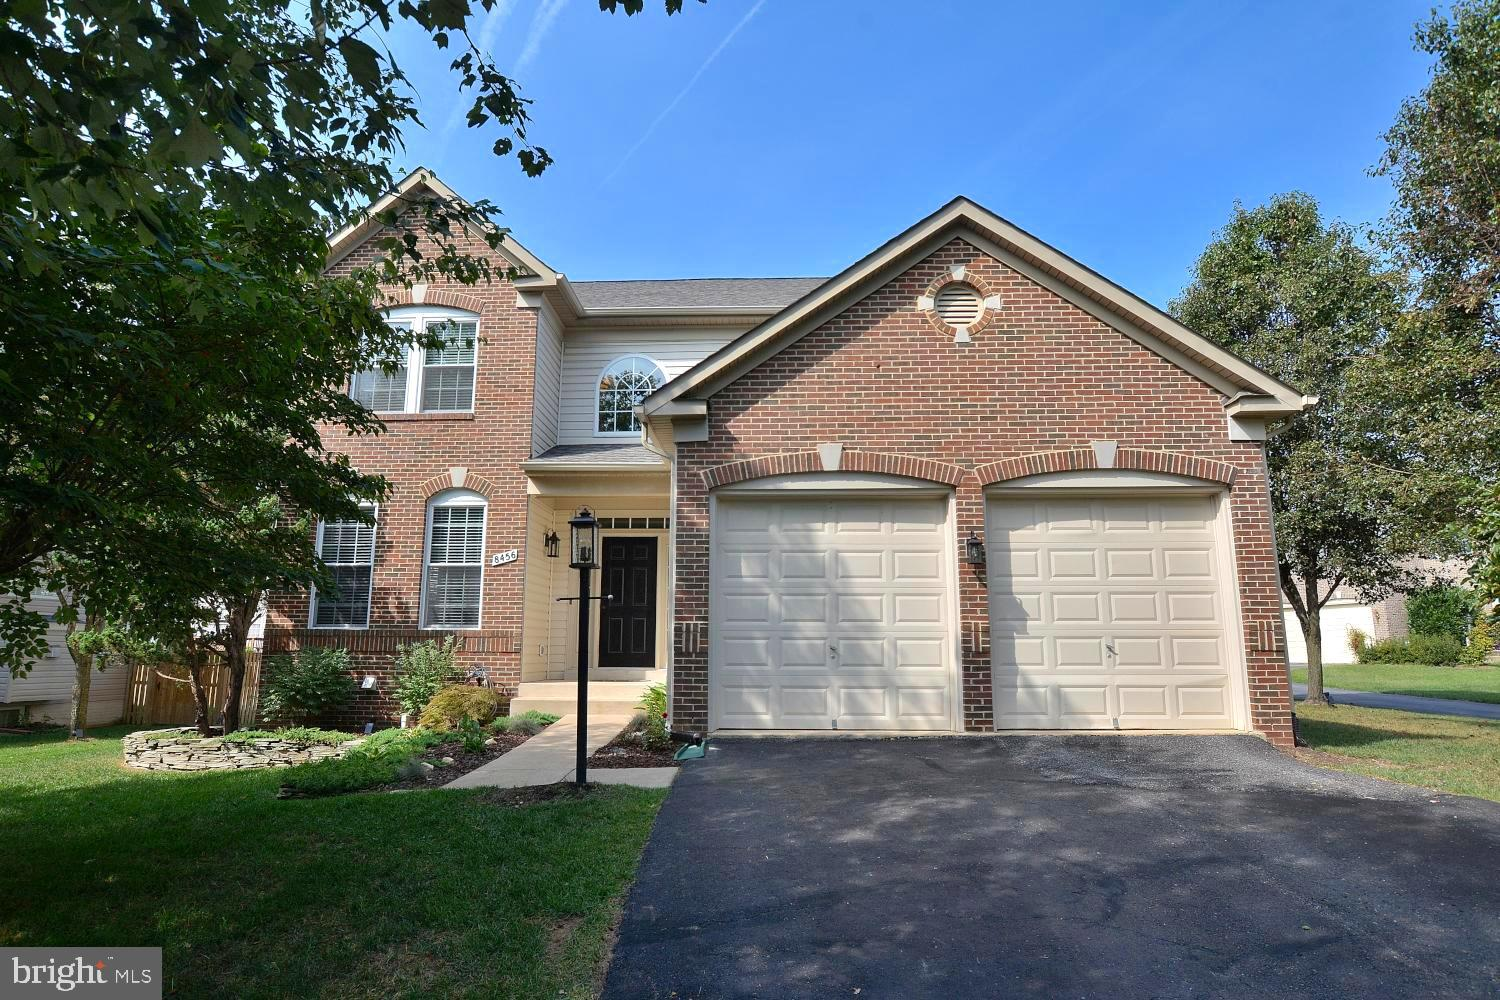 OVER $125,000 IN UPGRADES OVER THE PAST 3 YEARS! In fact, this is perhaps the most upgraded home in the highly desired ~The Forest at Southrun~ subdivision to ever hit the market! This property was renovated top to bottom between 2016 and today with incredible attention to detail and quality ~improvements that included gorgeous, hand-scraped Hardwood Floors throughout (2016), energy-efficient Replacement Windows (2016), modern electrical switches and light fixtures throughout (2016), and an energy-efficient upgraded HVAC System (2016). The Tankless Water Heater was added in 2018, and the New Roof was just replaced in 2019. Access the Master Bath through the custom built Barn Doors and prepare to be blown away by the luxury and quality of the renovations. The redesigned (2016) Gourmet Kitchen includes incredible storage space in the oversized maple Cabinetry, seemingly endless Quartz Countertops with a stainless steel Farmhouse Sink, an upgraded stainless steel Appliance Package that includes Gas Cooking, and both Pendant and Recessed Lighting. The Library/Office on the main level is another feature that sets this home apart from the ordinary. The completely Finished Basement includes an ~Au Pair Suite~ with Full Bath, a large ~Game Room~ and a wide walk-up exit. Relax on the oversized rear deck that looks out over a wide, flat backyard with an in-ground irrigation system. This and so much more! If still available, Open House on Sunday, September 22nd from 2-4 PM.